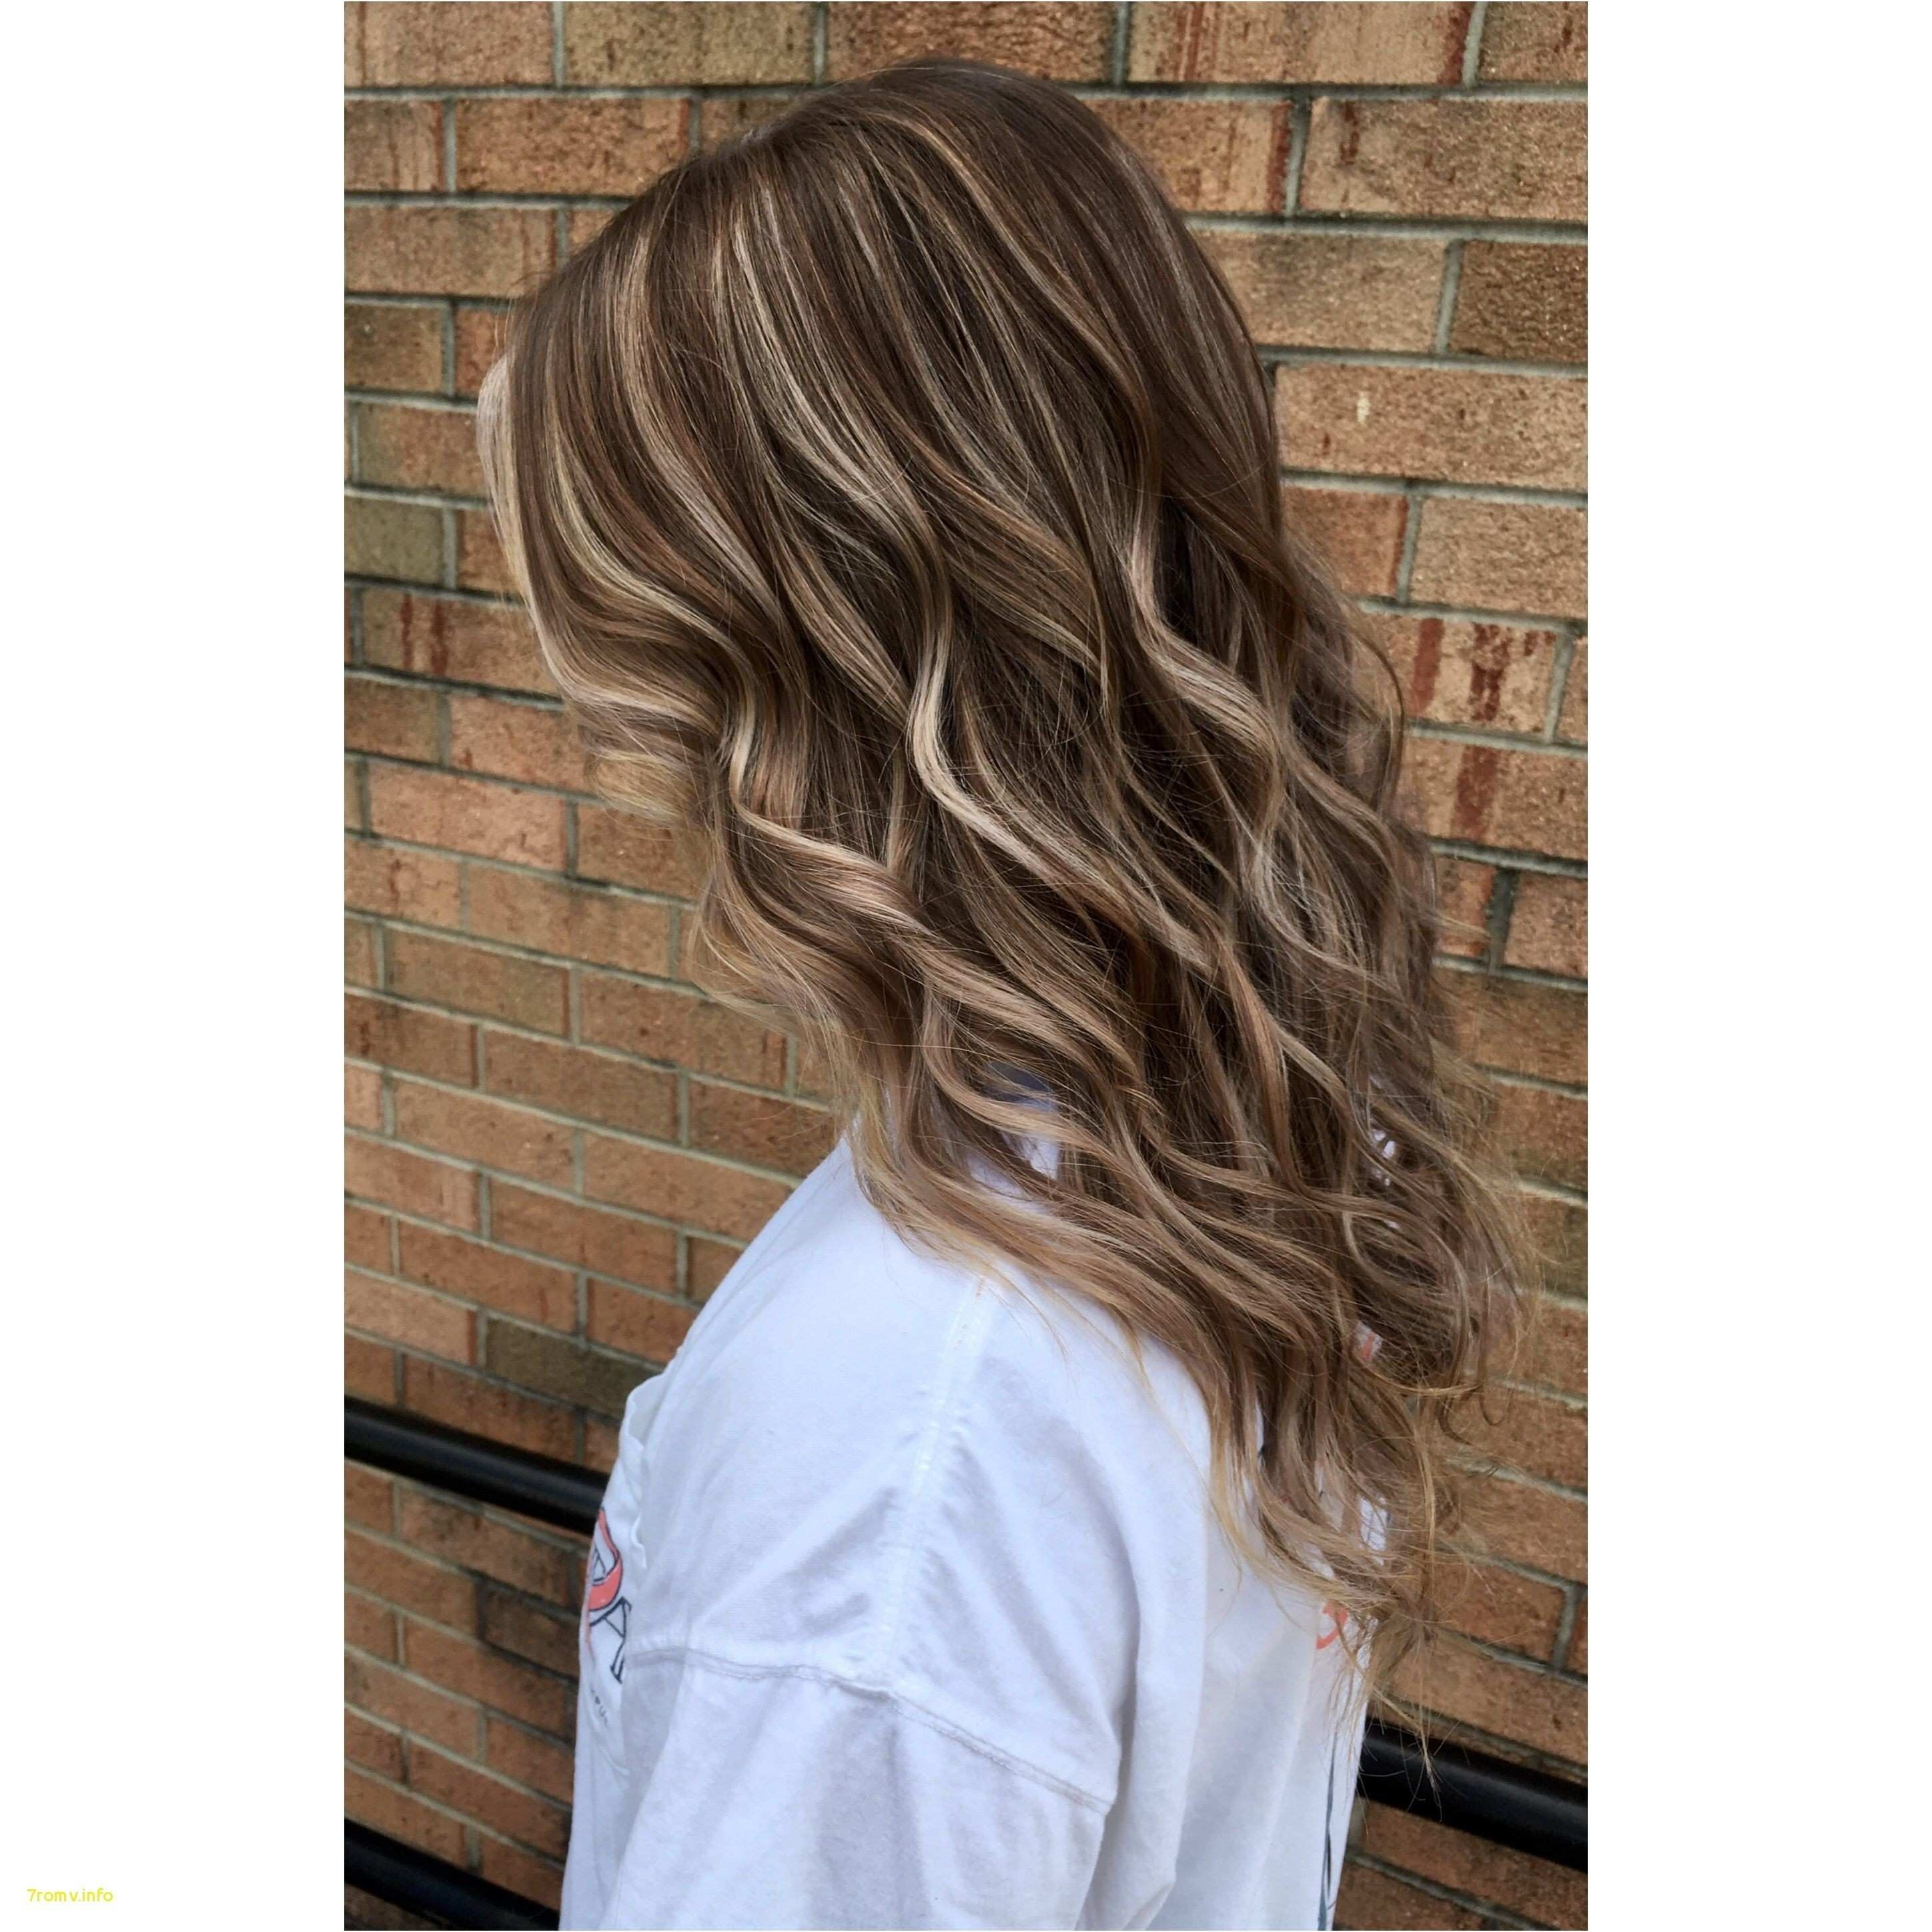 Hairstyles : Caramel Highlights Straight Hair Awe Inspiring in The most ideal Asian Hair With Caramel Highlights